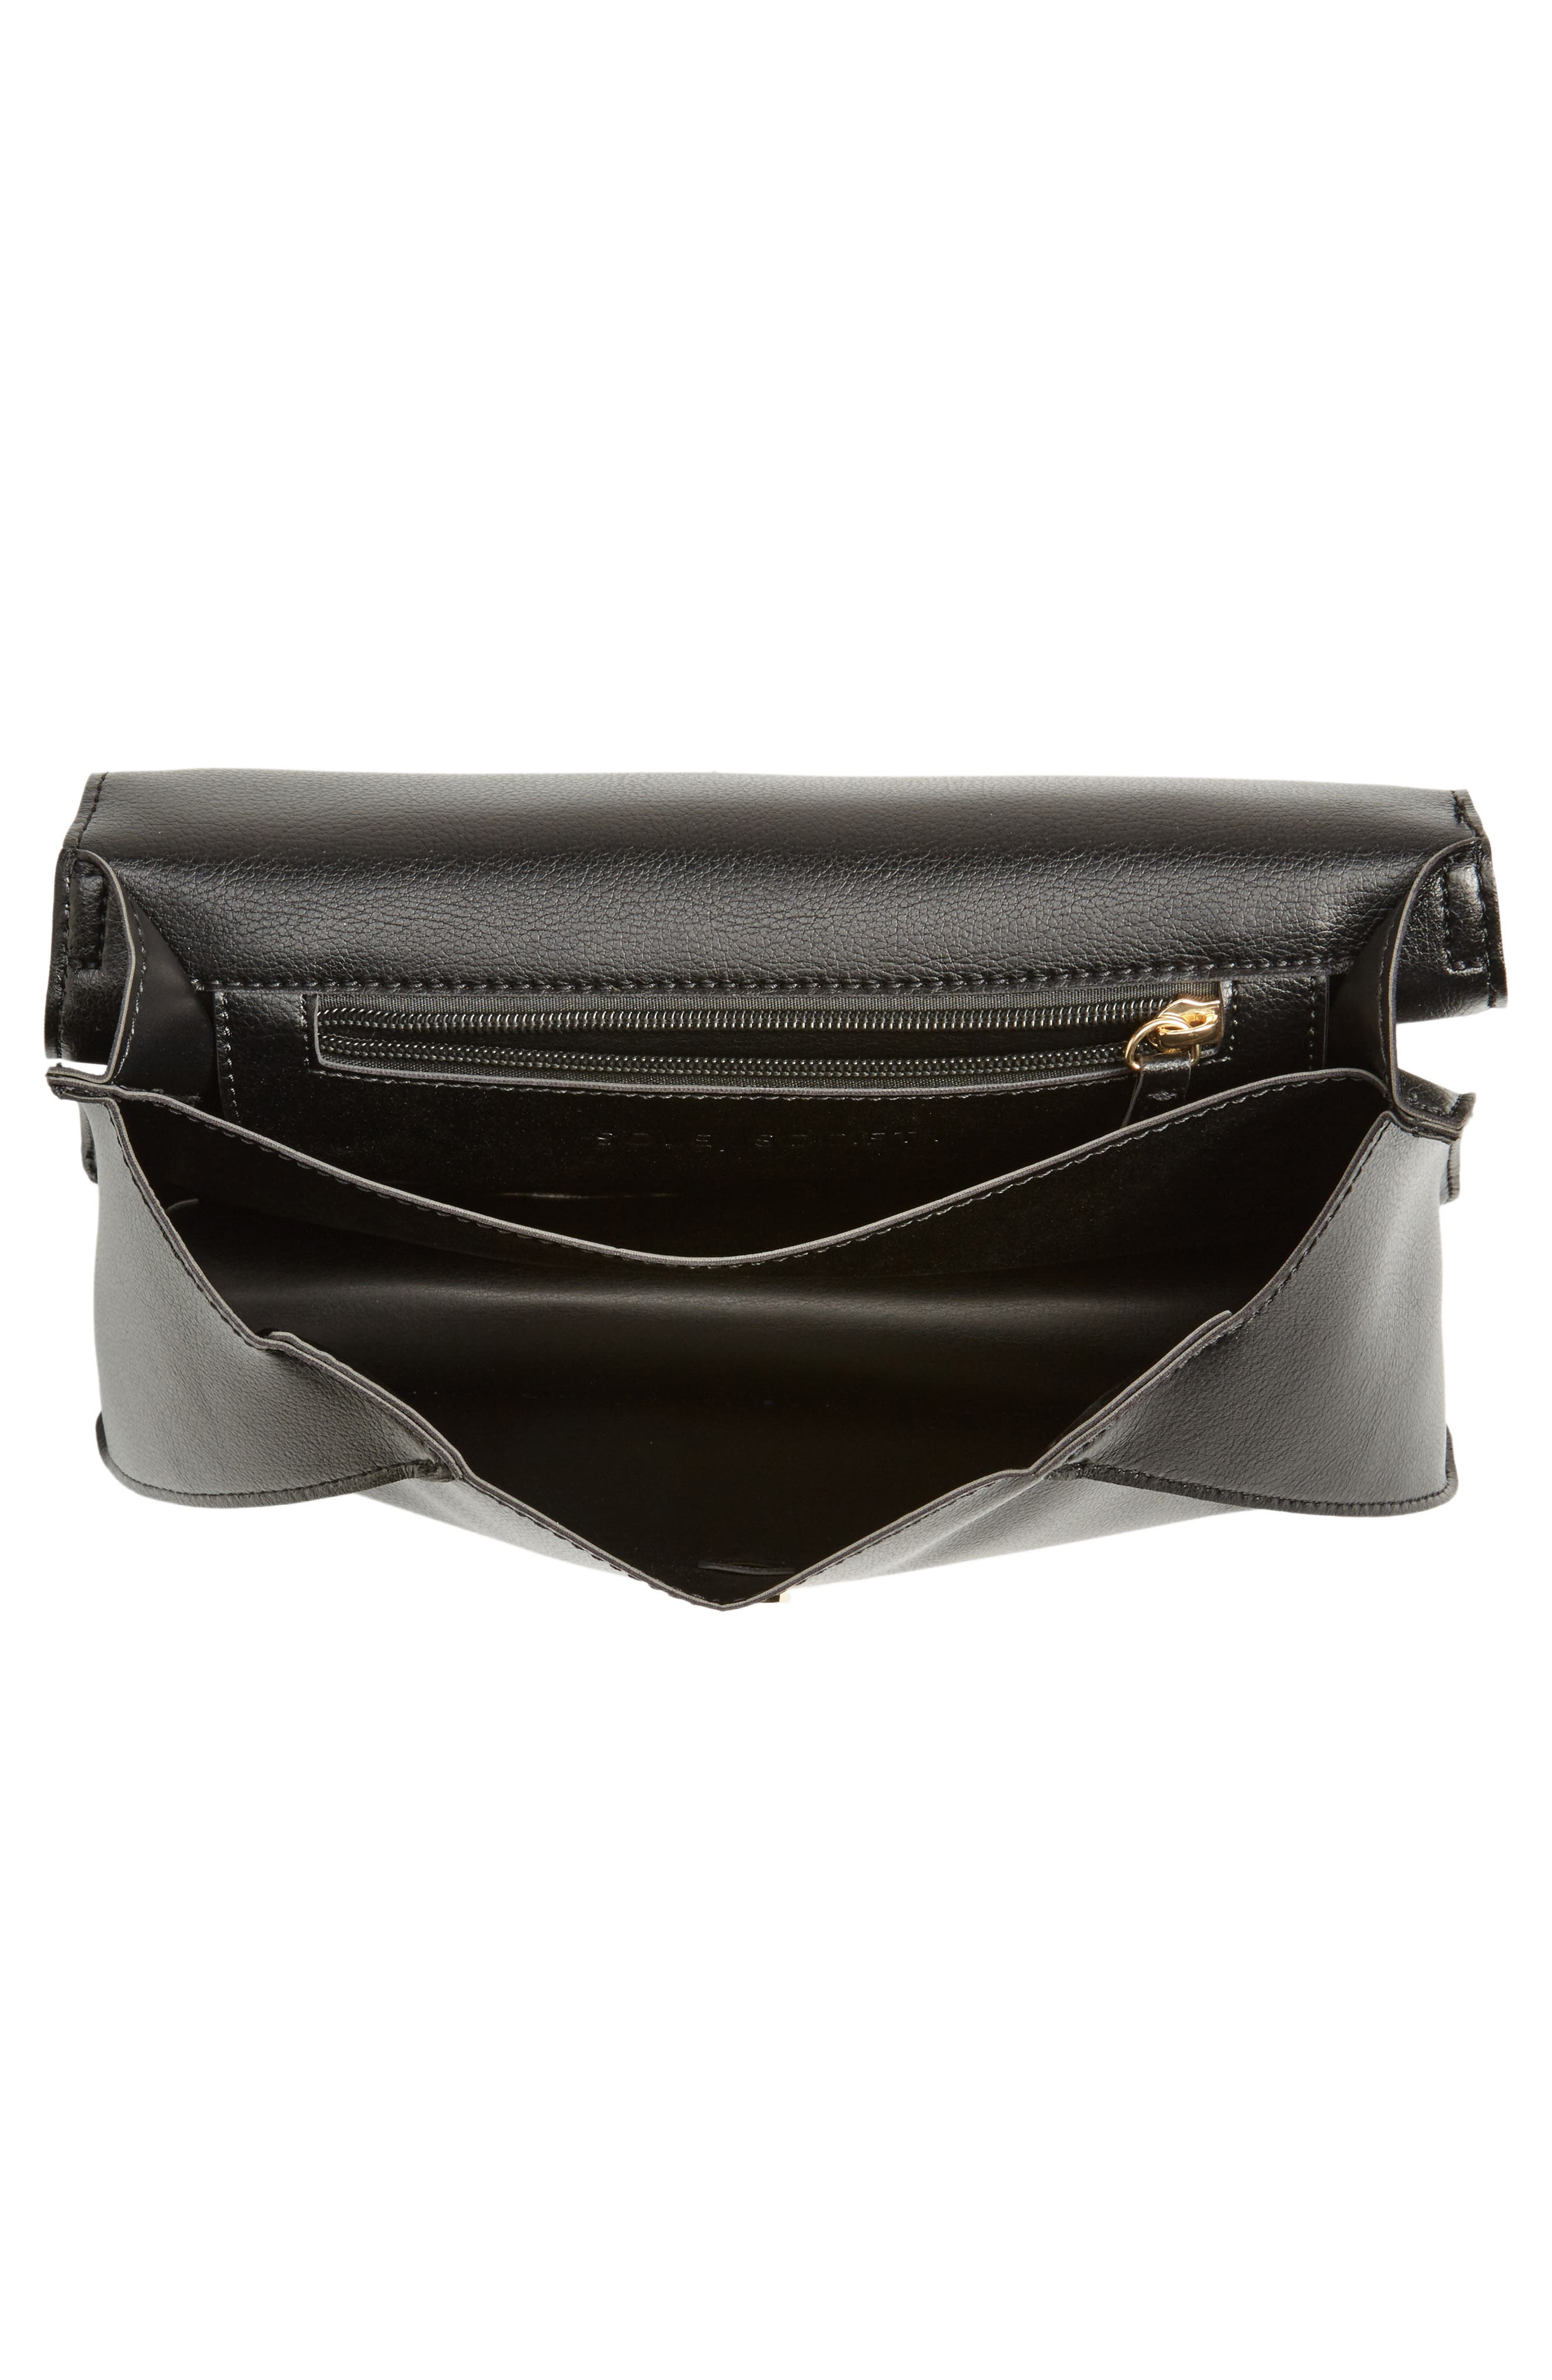 Alternate Image 3  - Sole Society Izzy Faux Leather Top Handle Satchel